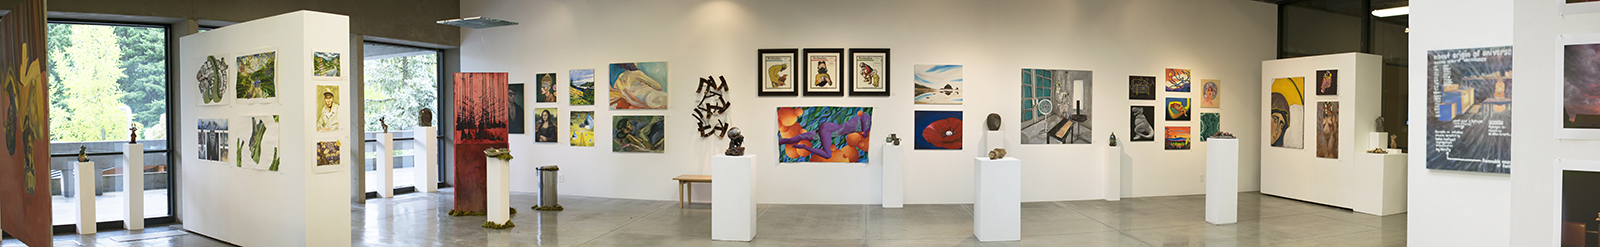 Panorama installation view of art gallery with many artworks on the far wall in the background, on additional walls to the left and rights, and of several pedestals in the middle.